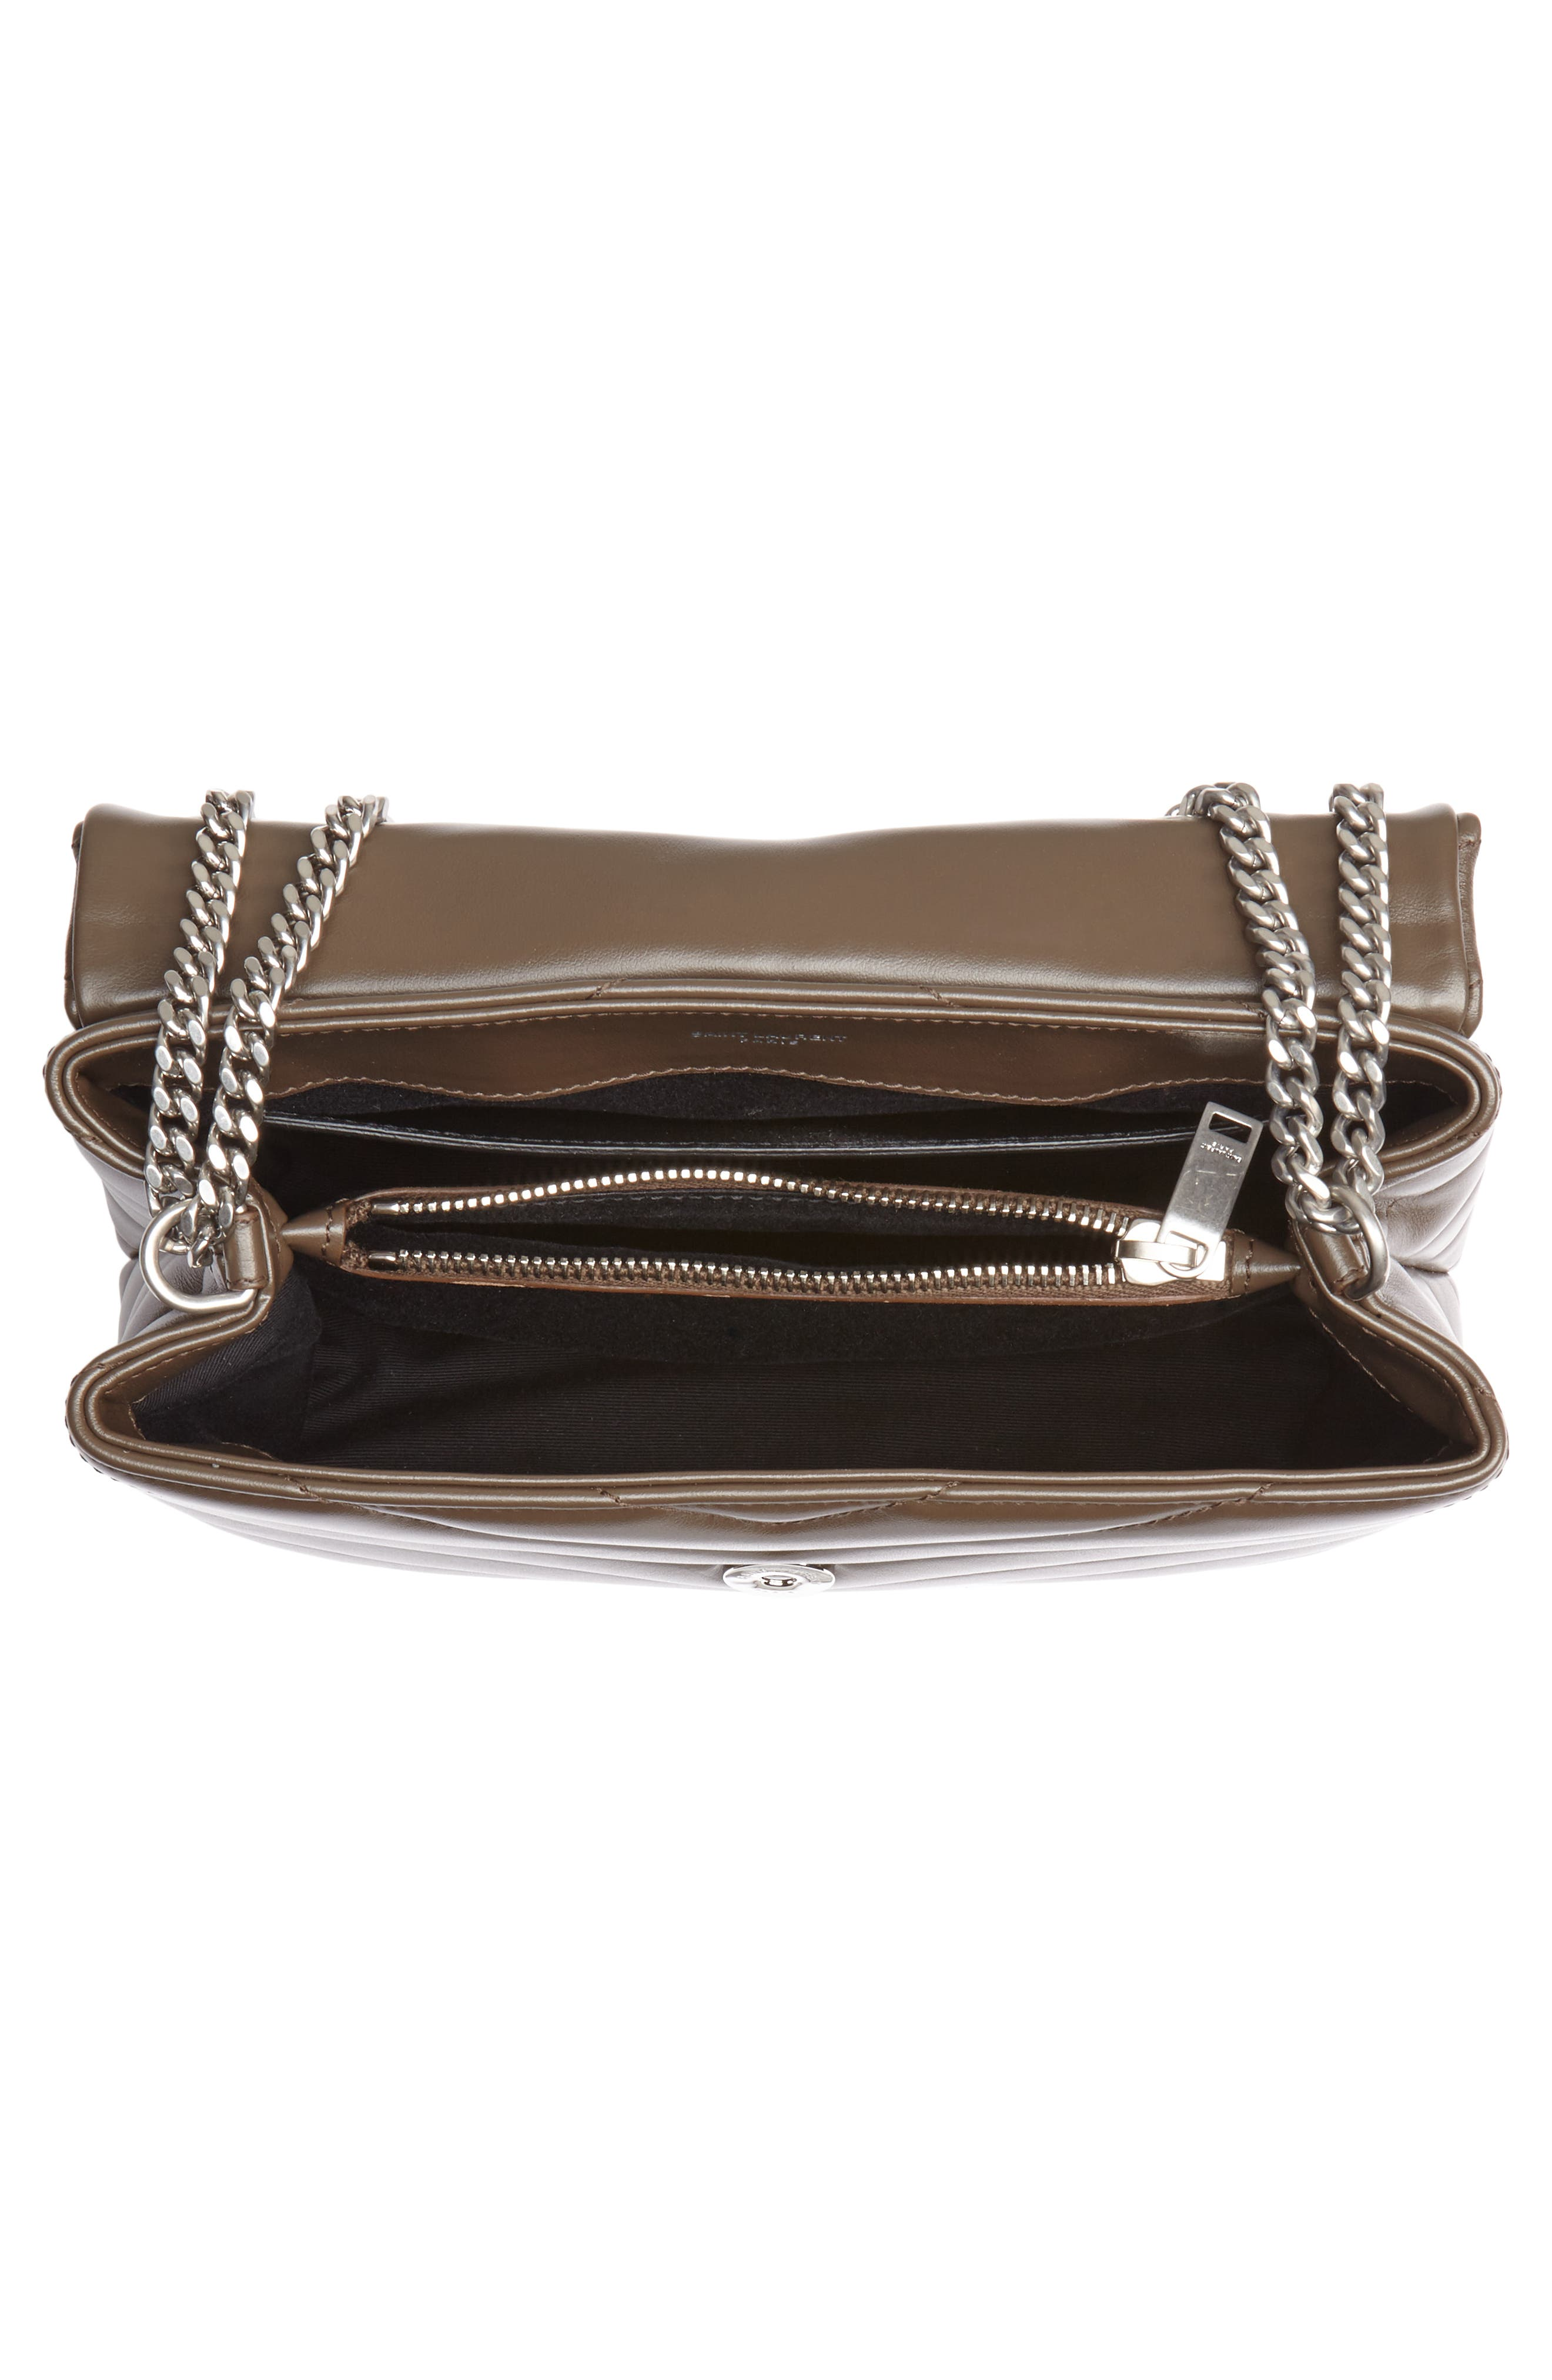 Small Loulou Matelassé Leather Shoulder Bag,                             Alternate thumbnail 4, color,                             FAGGIO/ FAGGIO